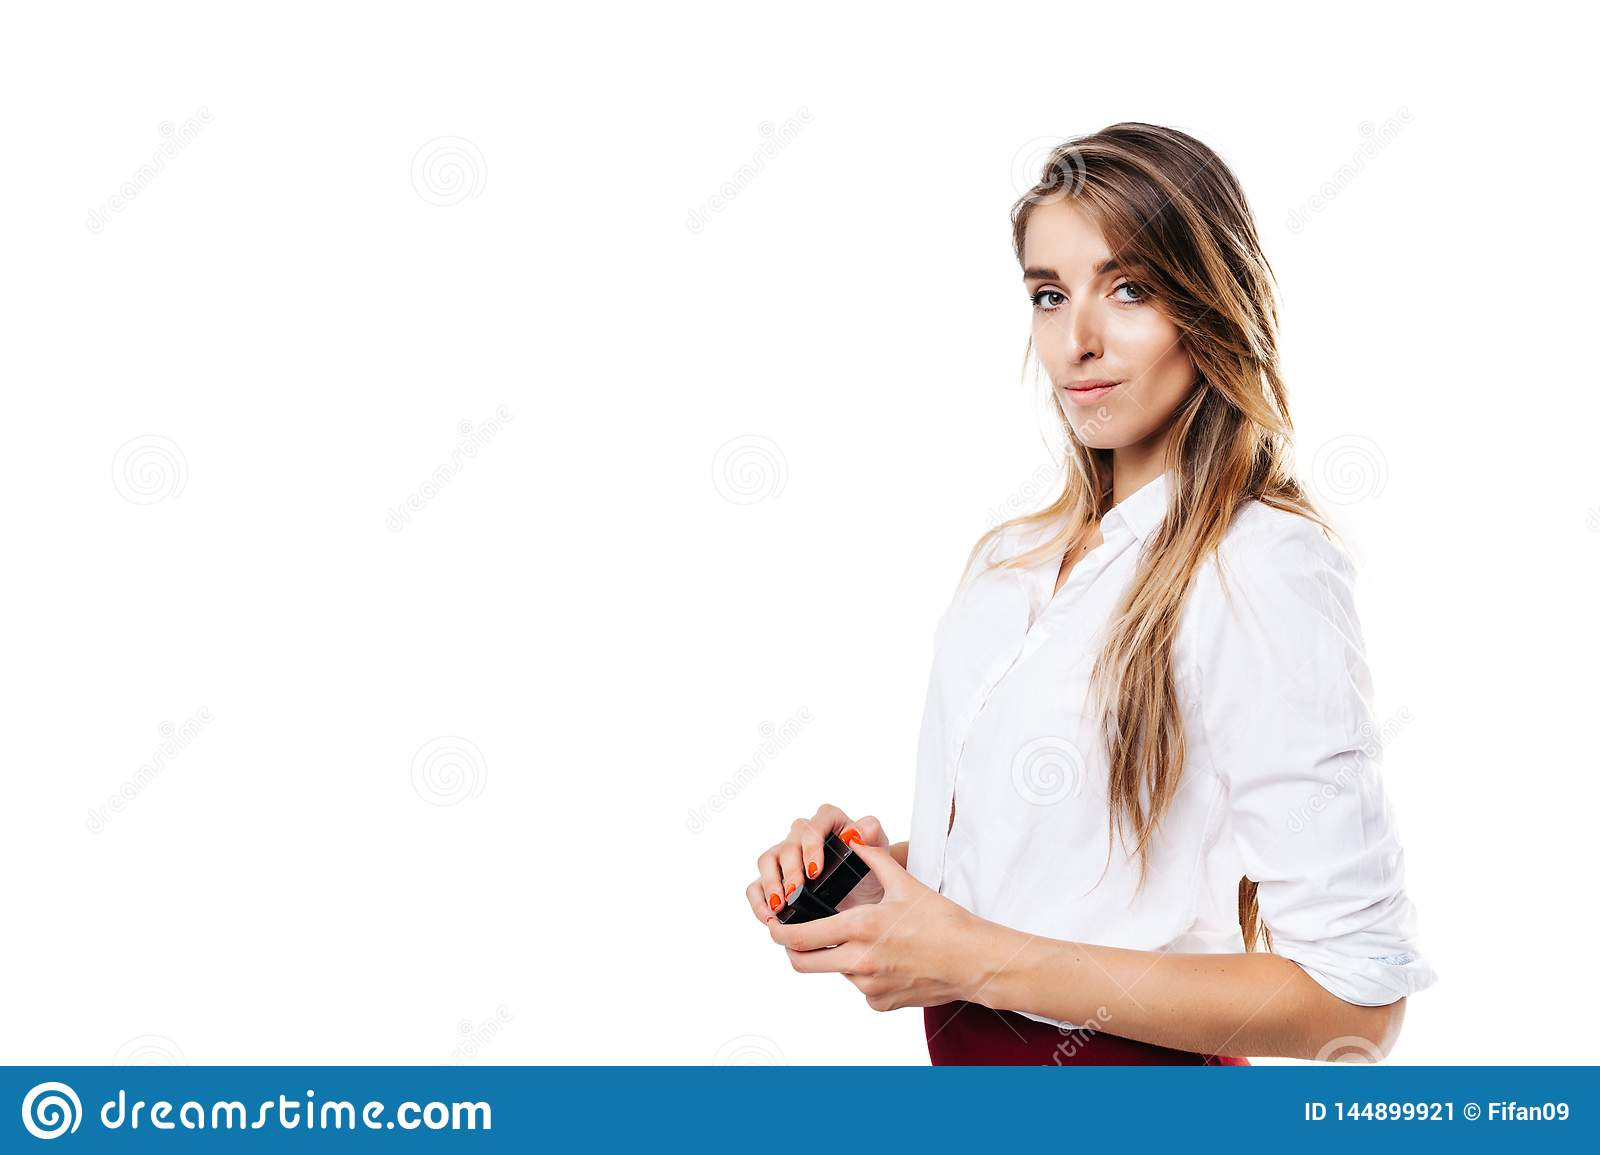 Girl in white shirt and burgundy skirt on an isolated white background